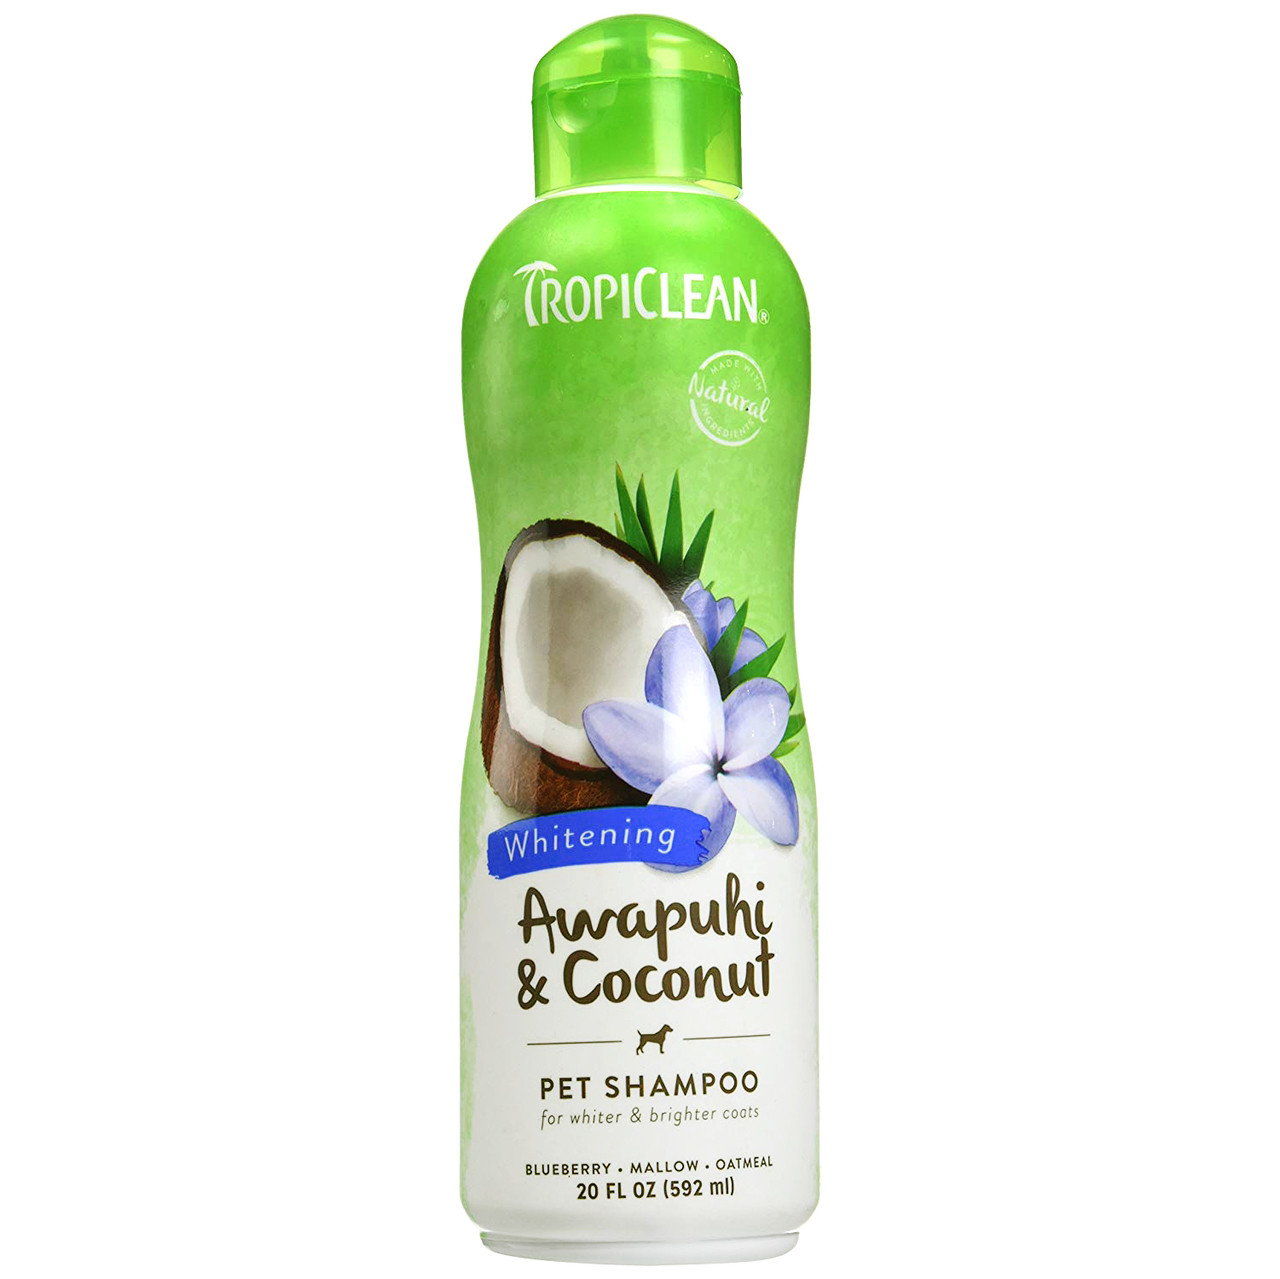 click here to shop TropiClean Awapuhi & Coconut Whitening Pet Shampoo